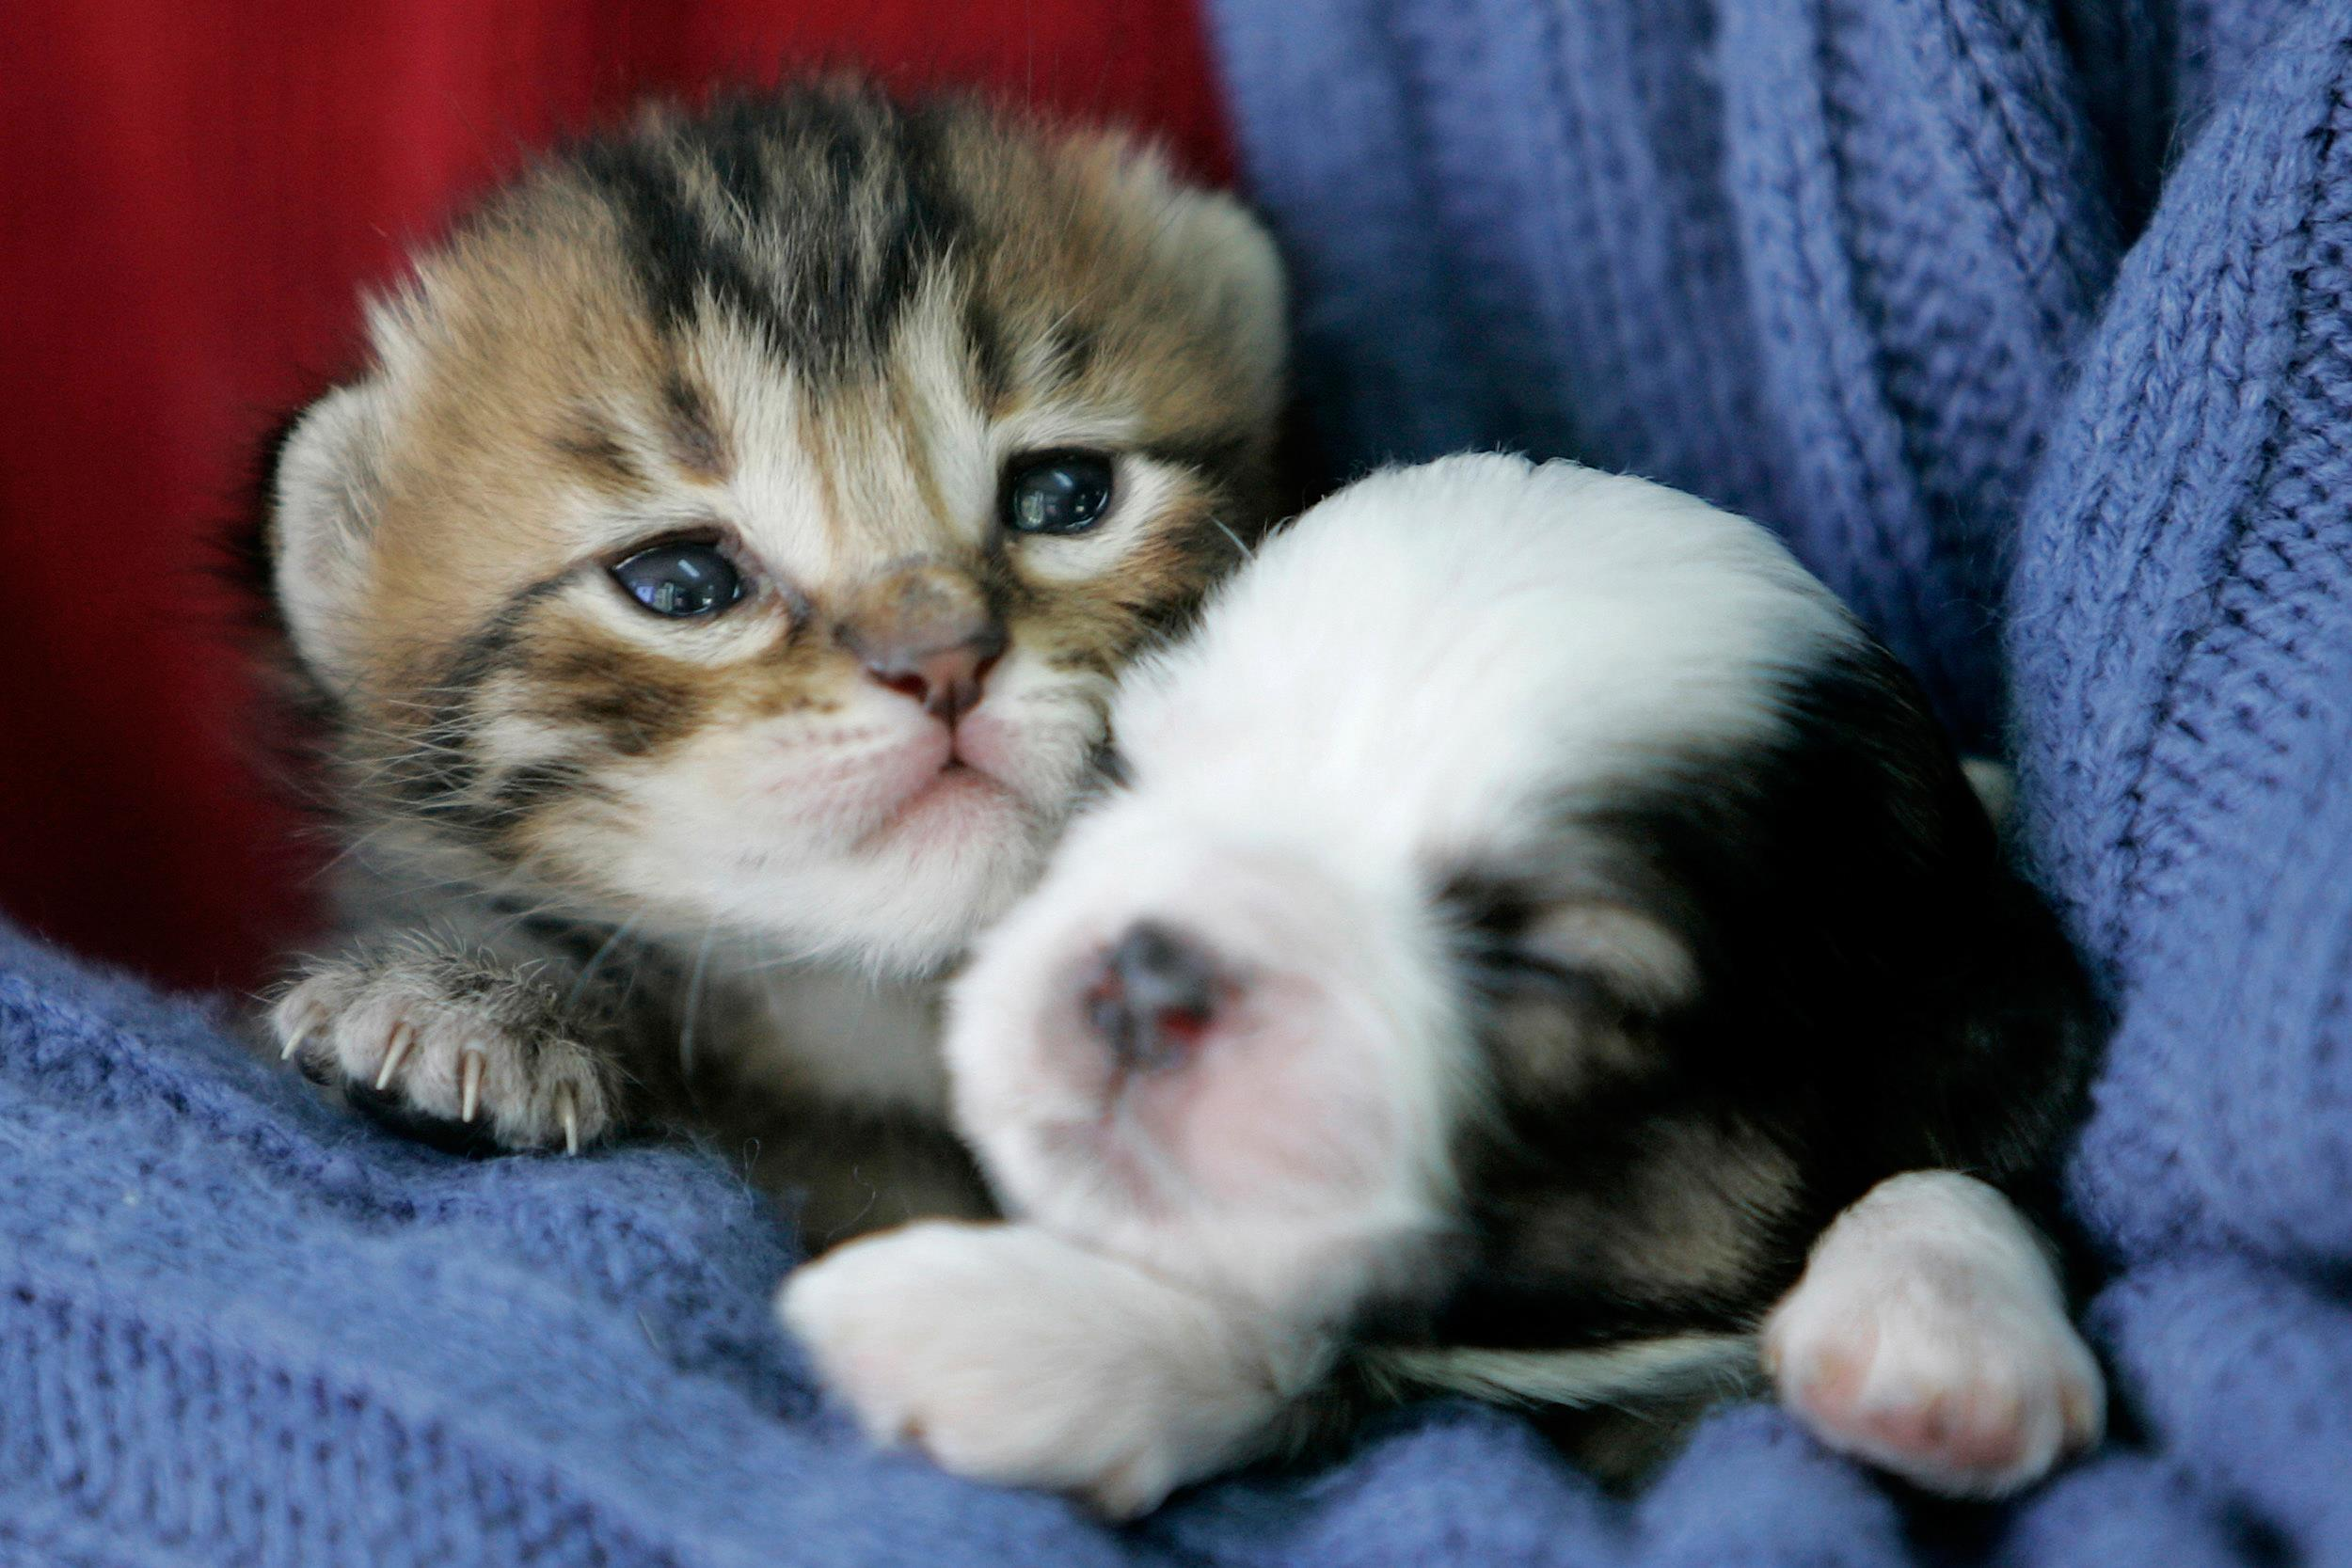 Baby Kittens And Puppies Together